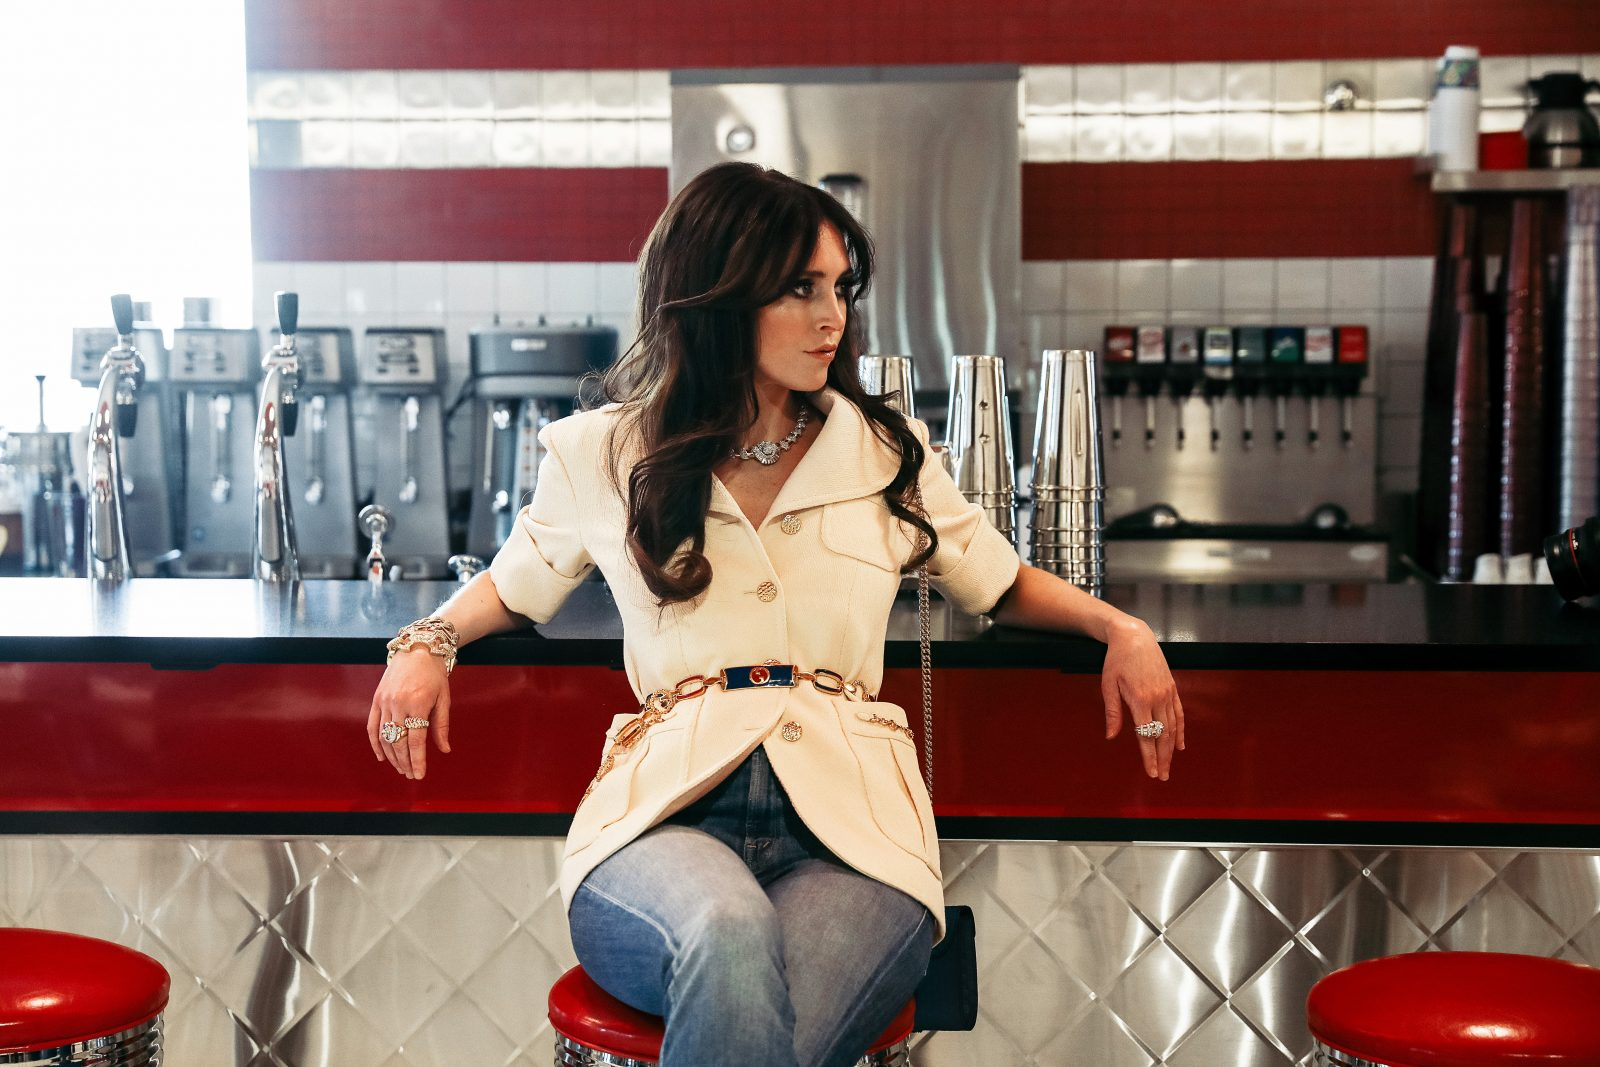 Get to know Kelleigh Bannen through these featured q&a